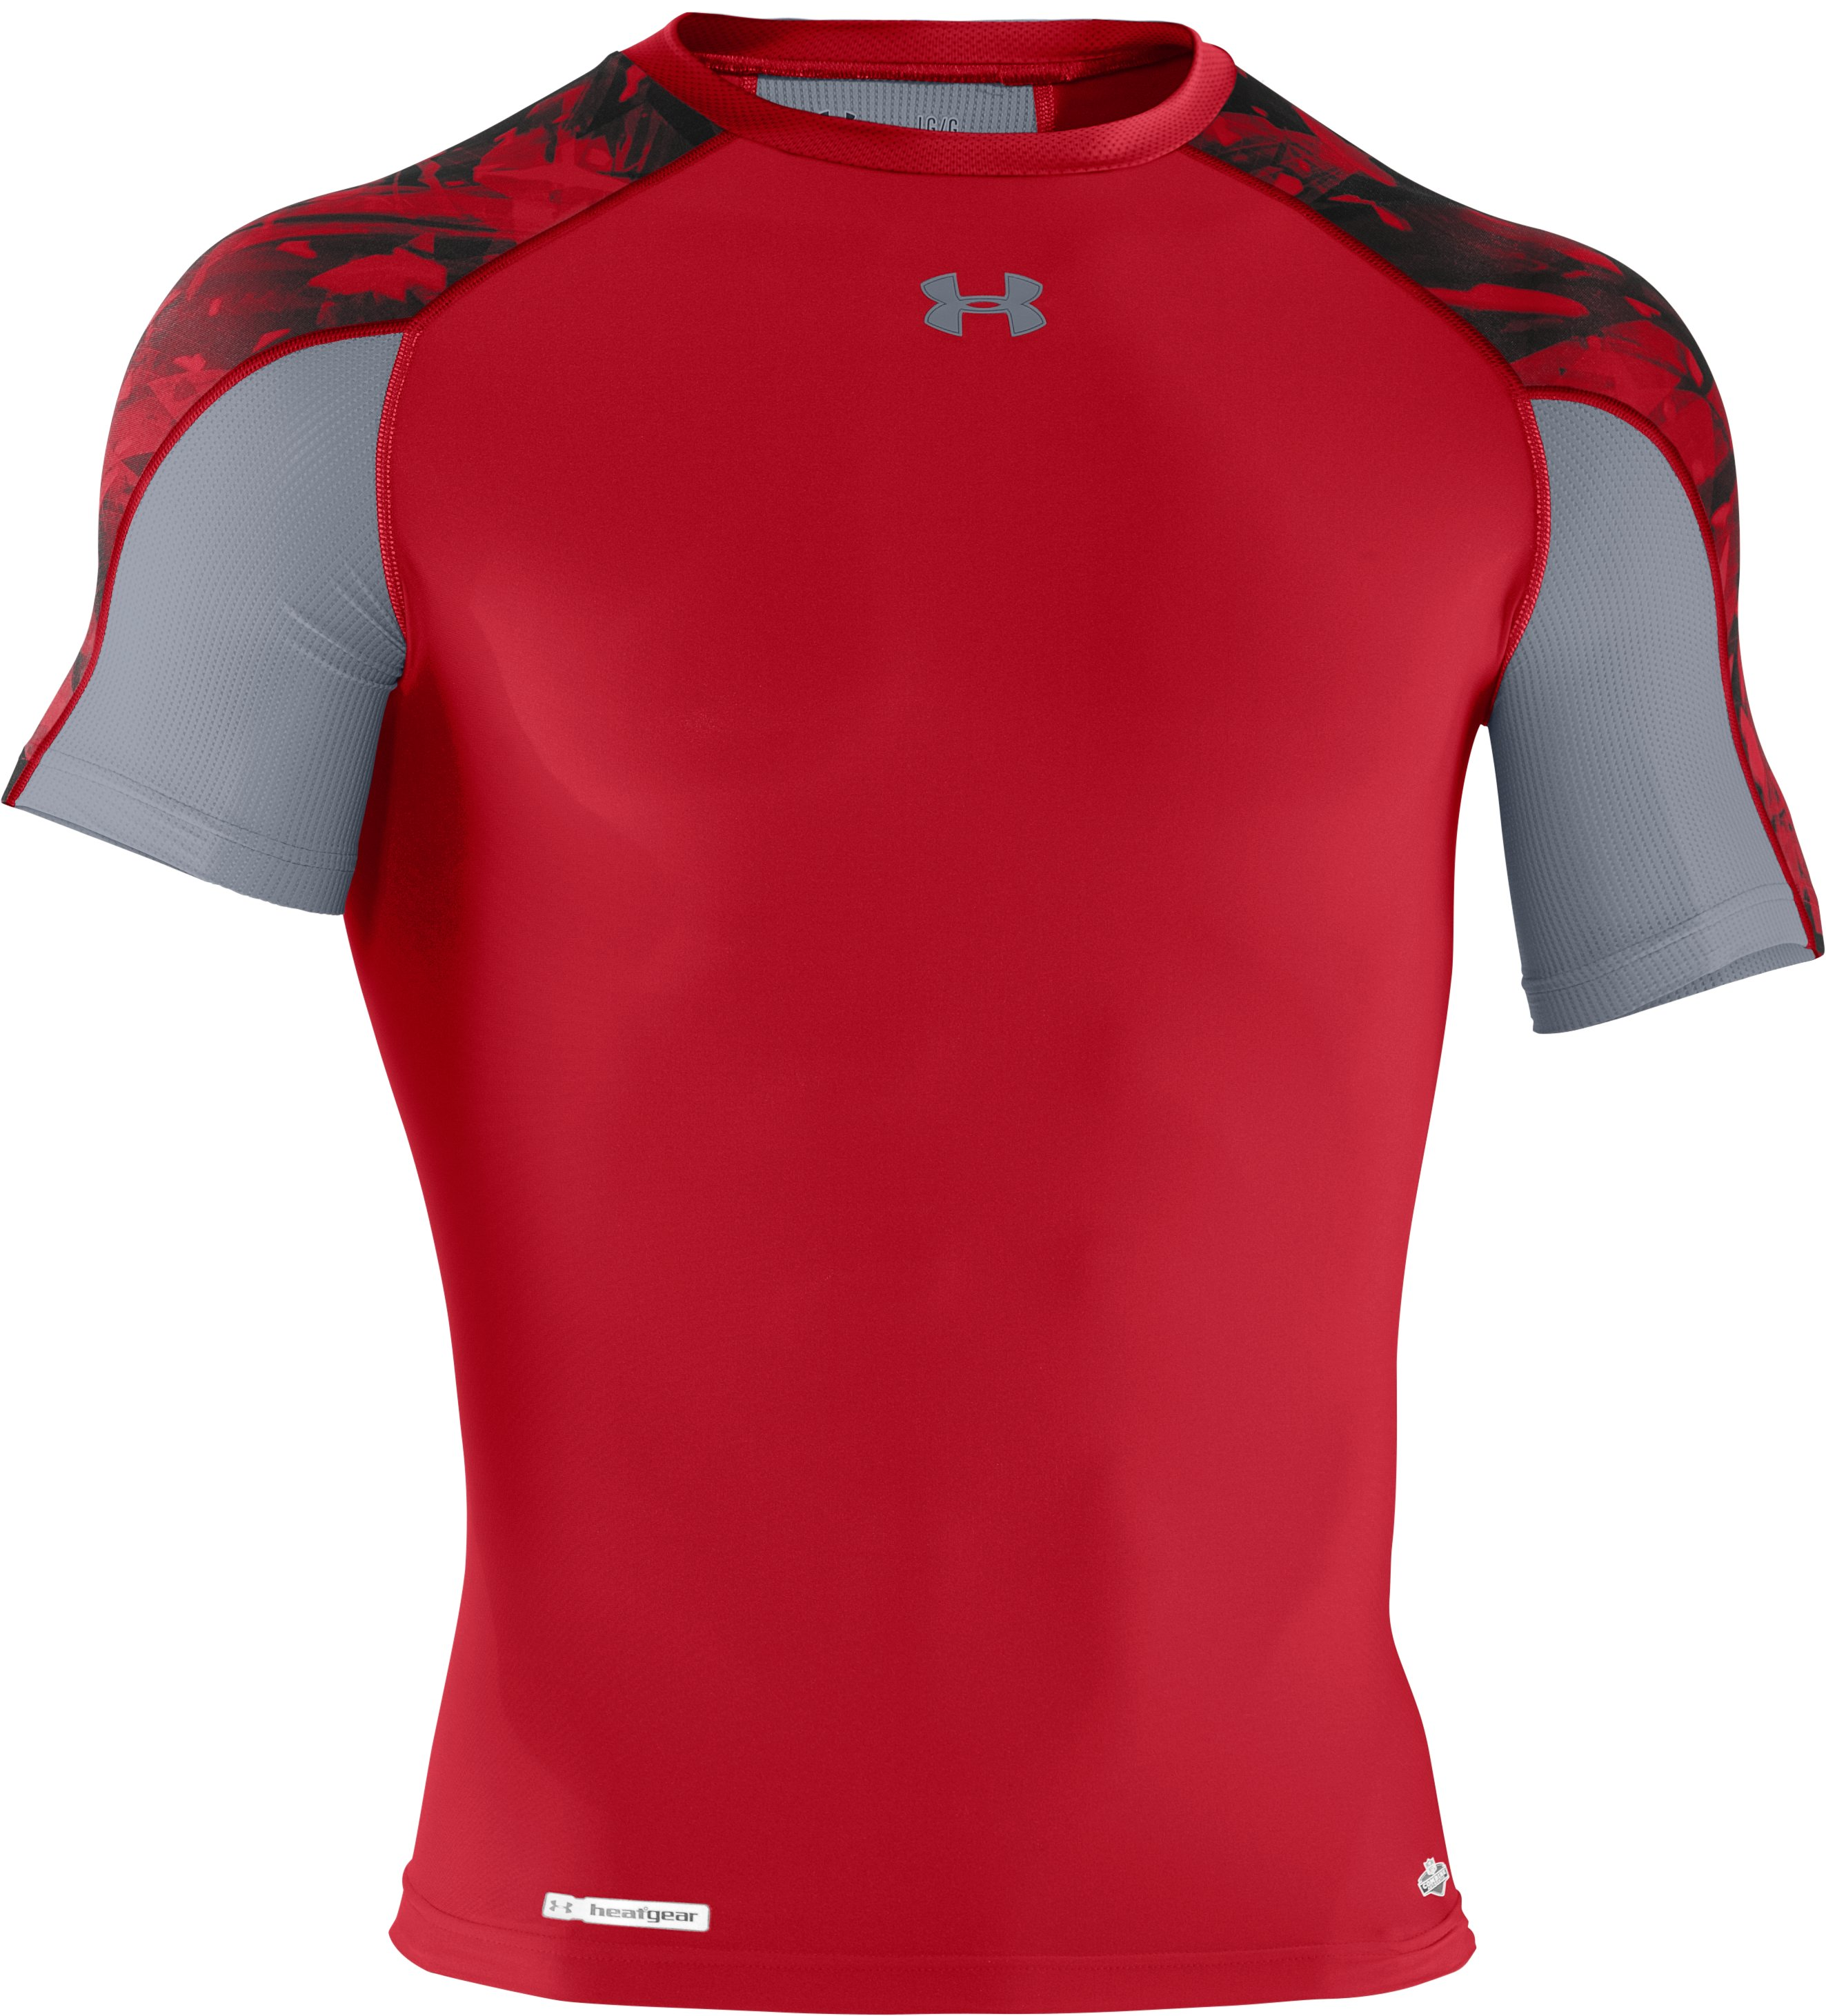 Men's NFL Combine Authentic Compression Short Sleeve, Red, undefined